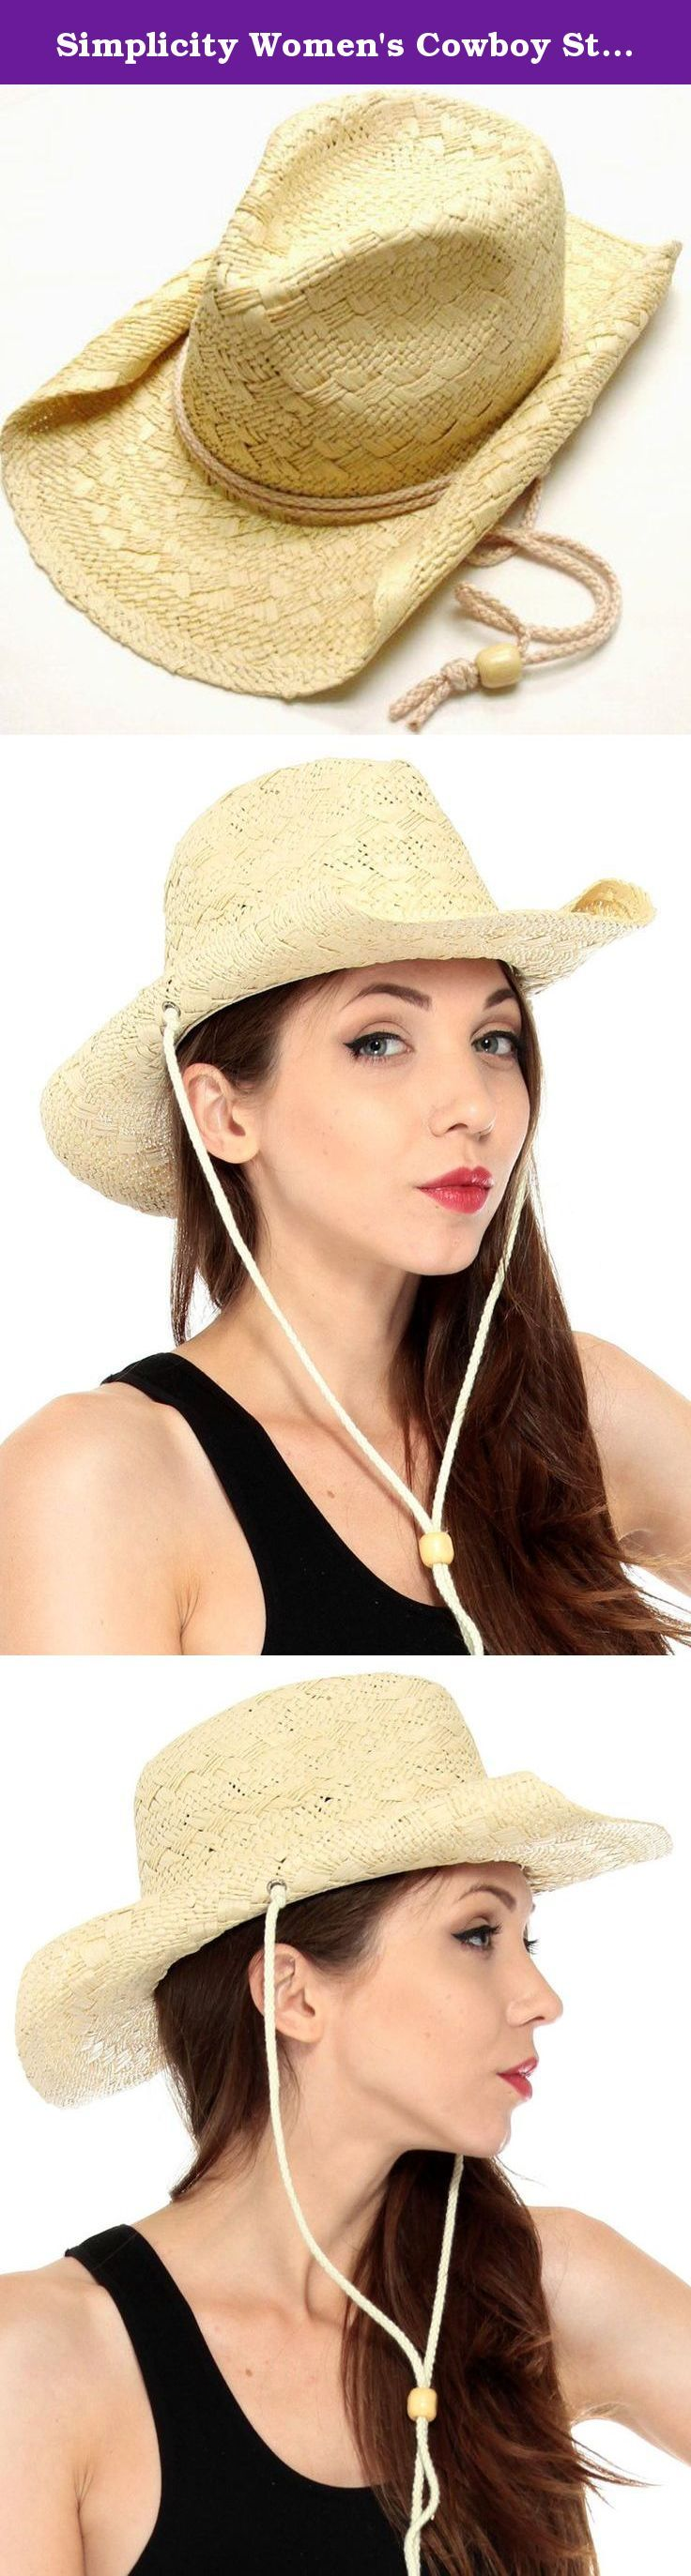 """Simplicity Women's Cowboy Straw Hat with Curled Side Brim Natural. Classic cowboy hat with a stylish rolled brim and adjustable chin strap with wooden bead. This design comes with an elastic sweatband and a plastic wired tip. Material: Synthetic Straw Size: Circumference: 22"""", Height: 5"""", Brim: 3.25"""" Package Includes: 1 x Straw Hat ."""